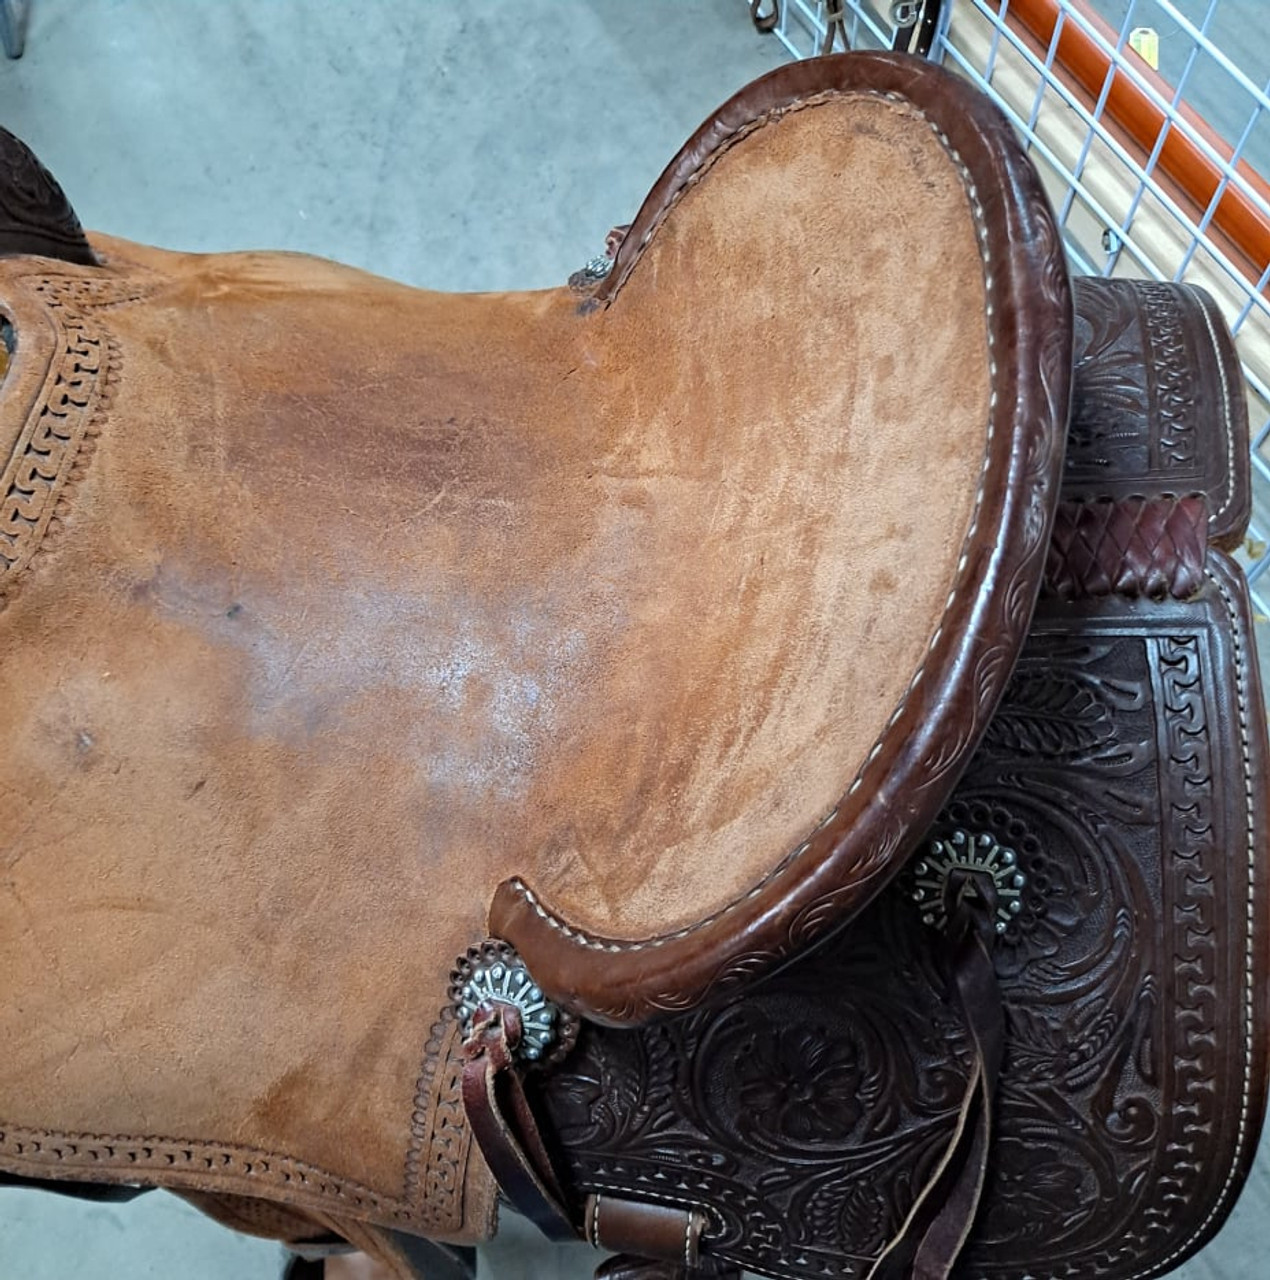 New Stock Saddle in Hermann Oak leather by Fort Worth Saddle Co with 15 inch seat. Chocolate color, half breed construction. Pencil roll seat. Gullet size is 7.75 inch, weight is 26lbs, and skirt is 26 inch. Made in USA. Limited lifetime warranty.  S997